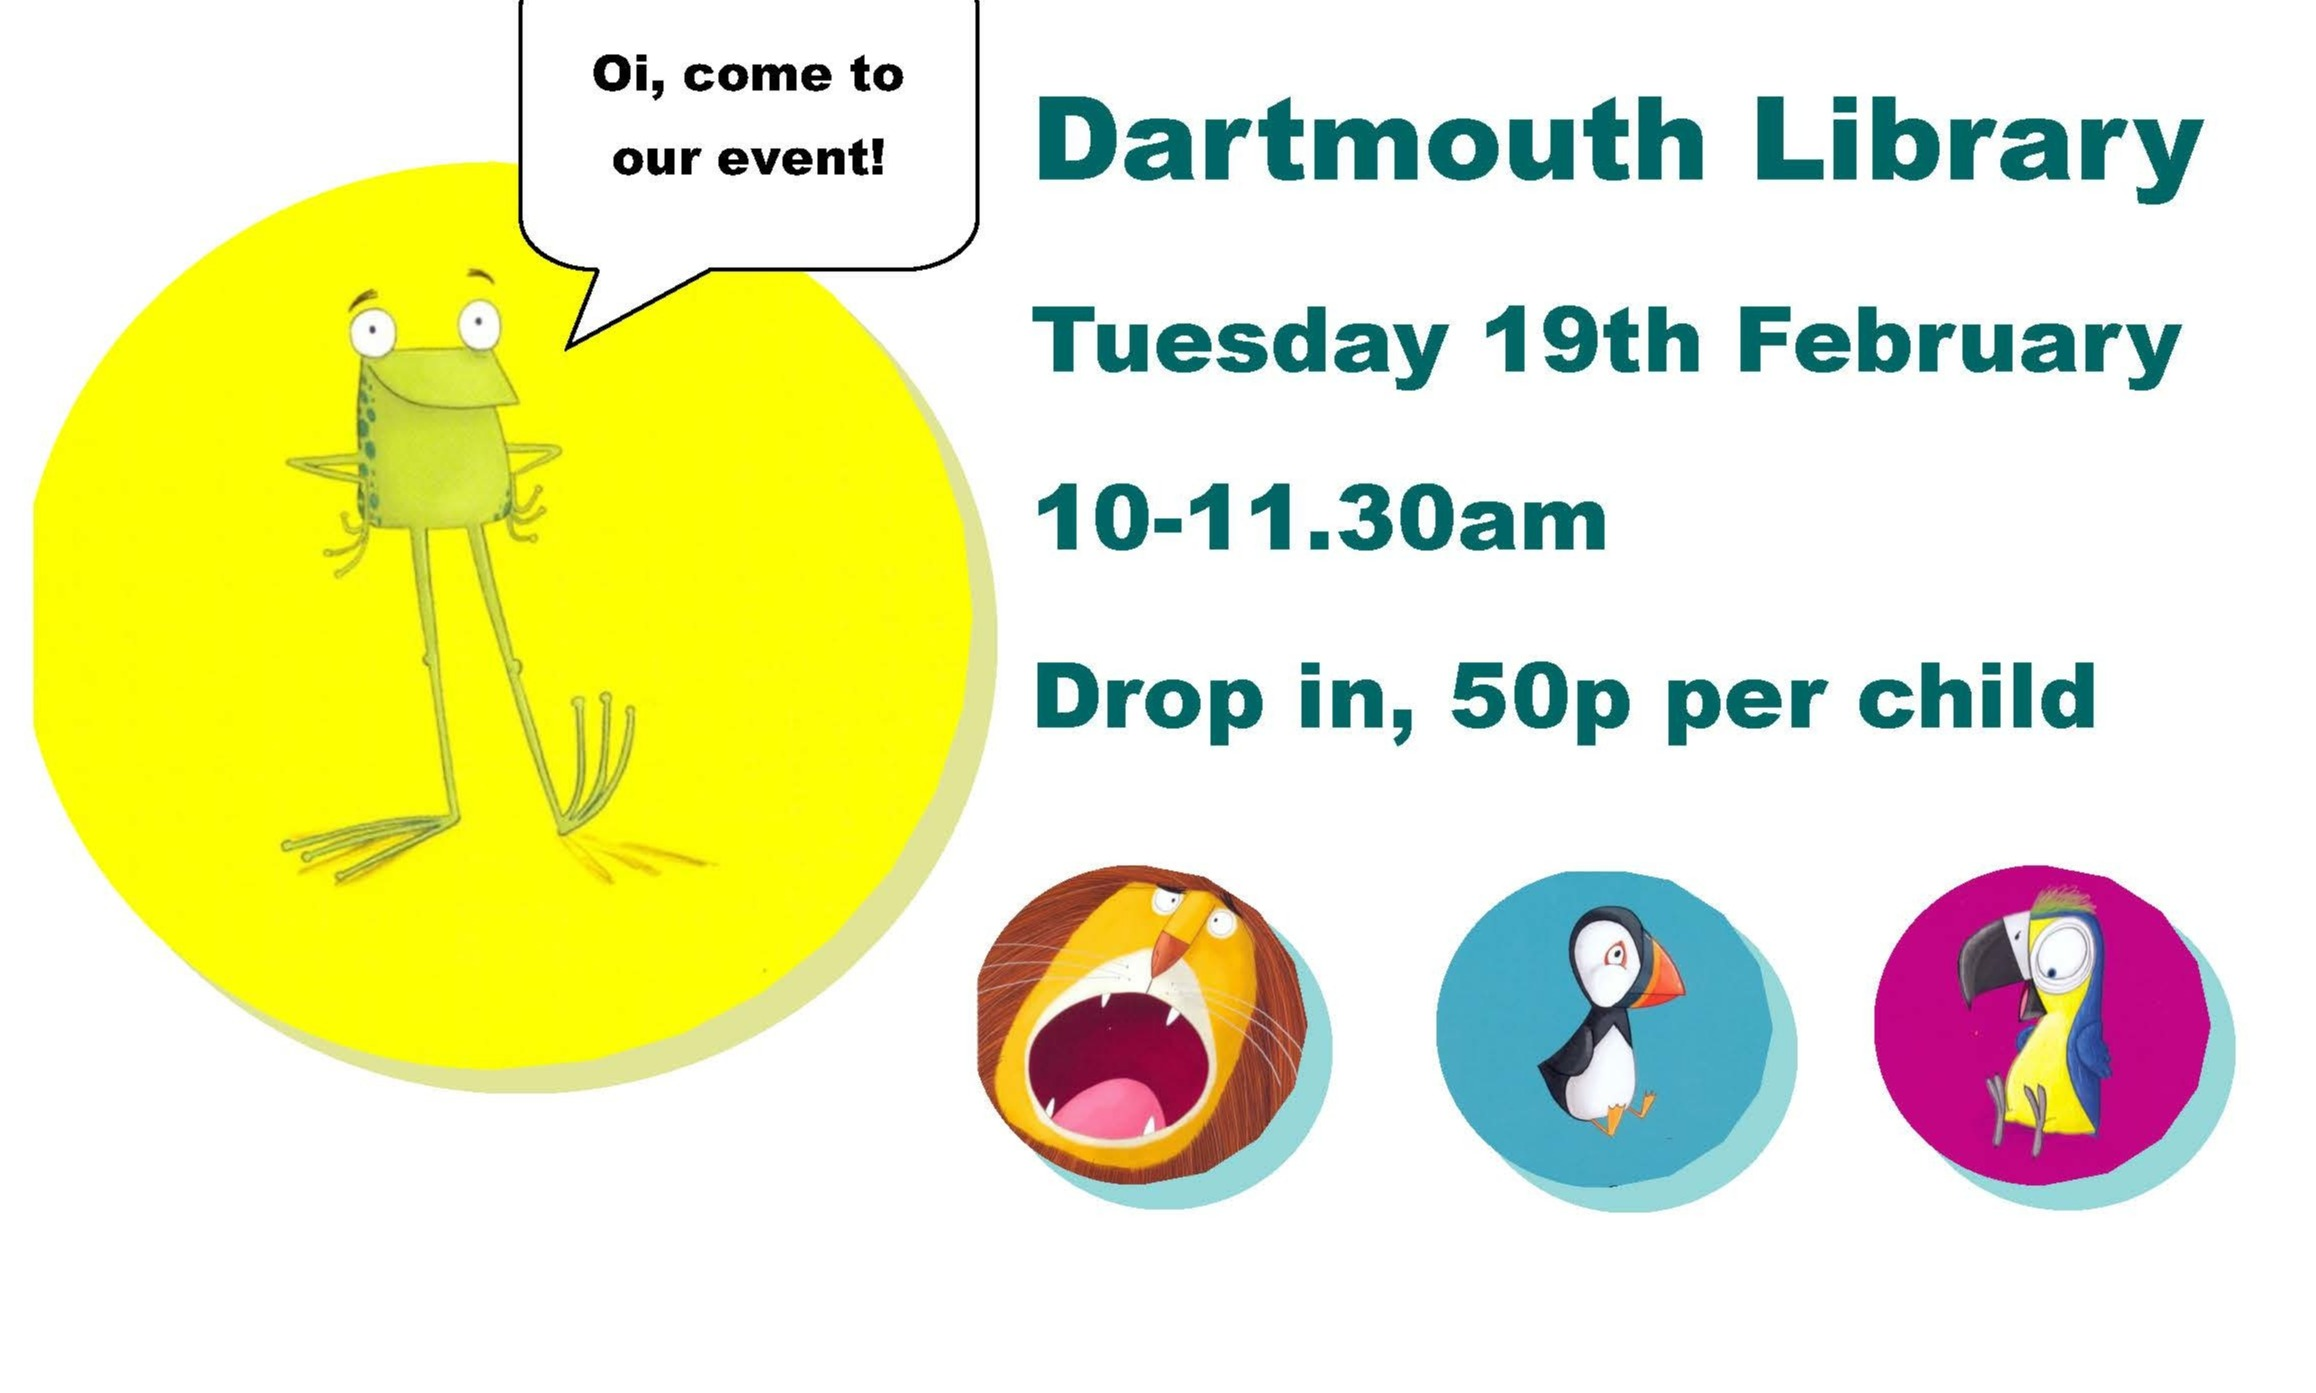 Oi Frog and friends Event! Dartmouth Library, Tue 19th February 10 to 11.30am